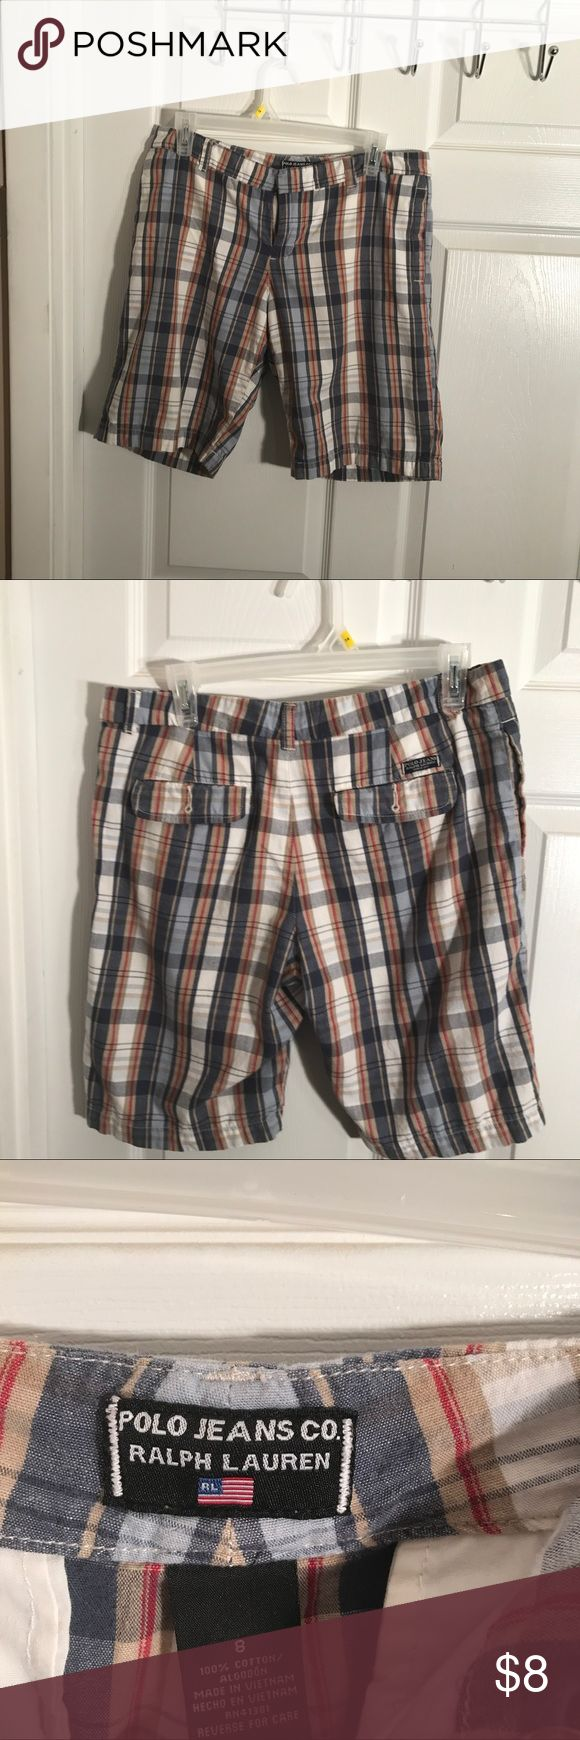 Polo Jeans Co - Ralph Lauren  Shorts -  8 Women's Size 8 Bermuda Shorts -Polo - Ralph Lauren  Cute Plaid Design - Good Pre - Owned Condition Ralph Lauren Shorts Bermudas